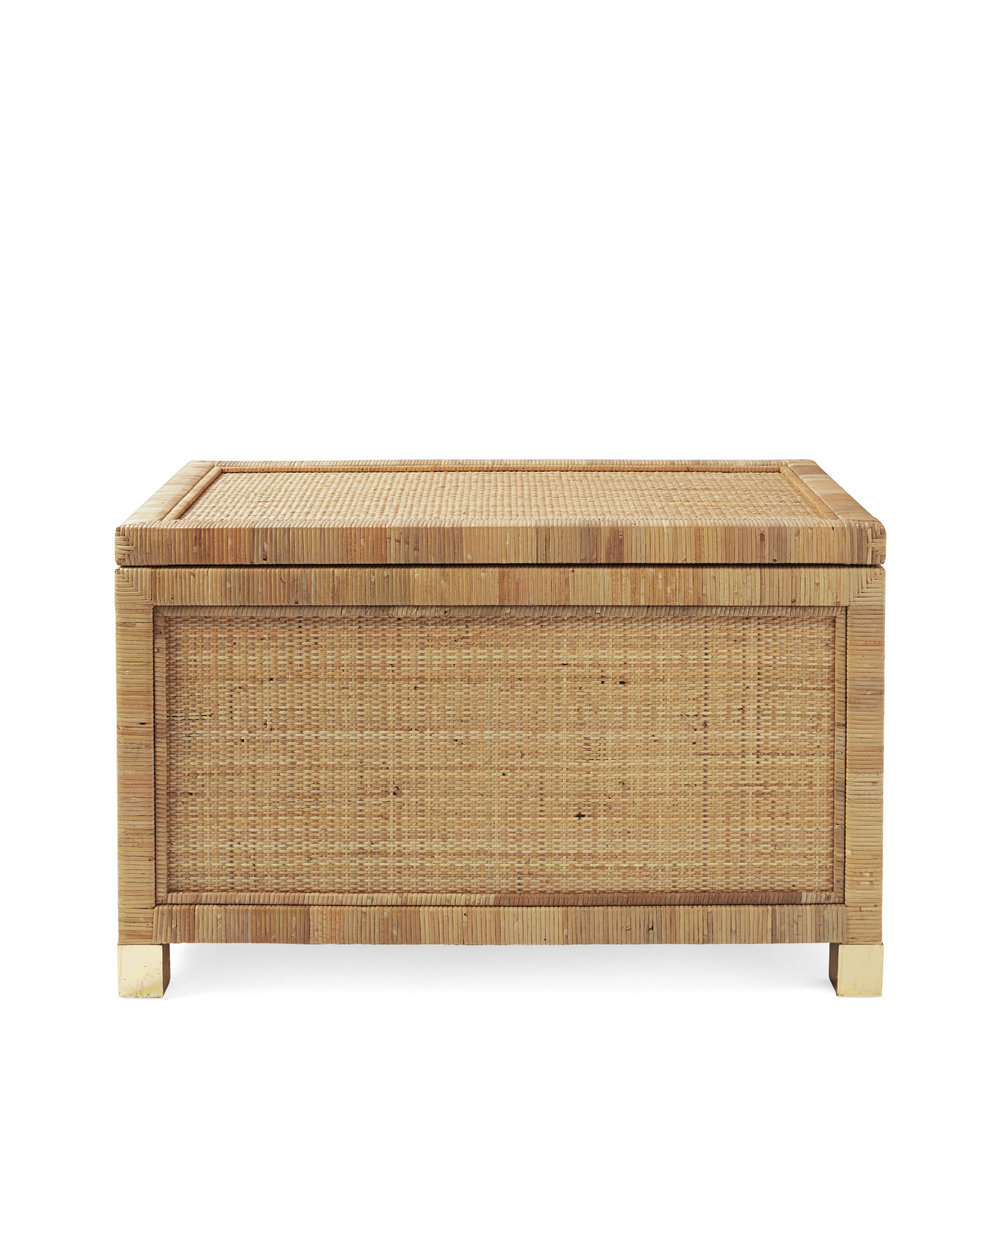 Furn_Balboa_Storage_Coffee_Table_Front_MV_Crop_SH.jpg